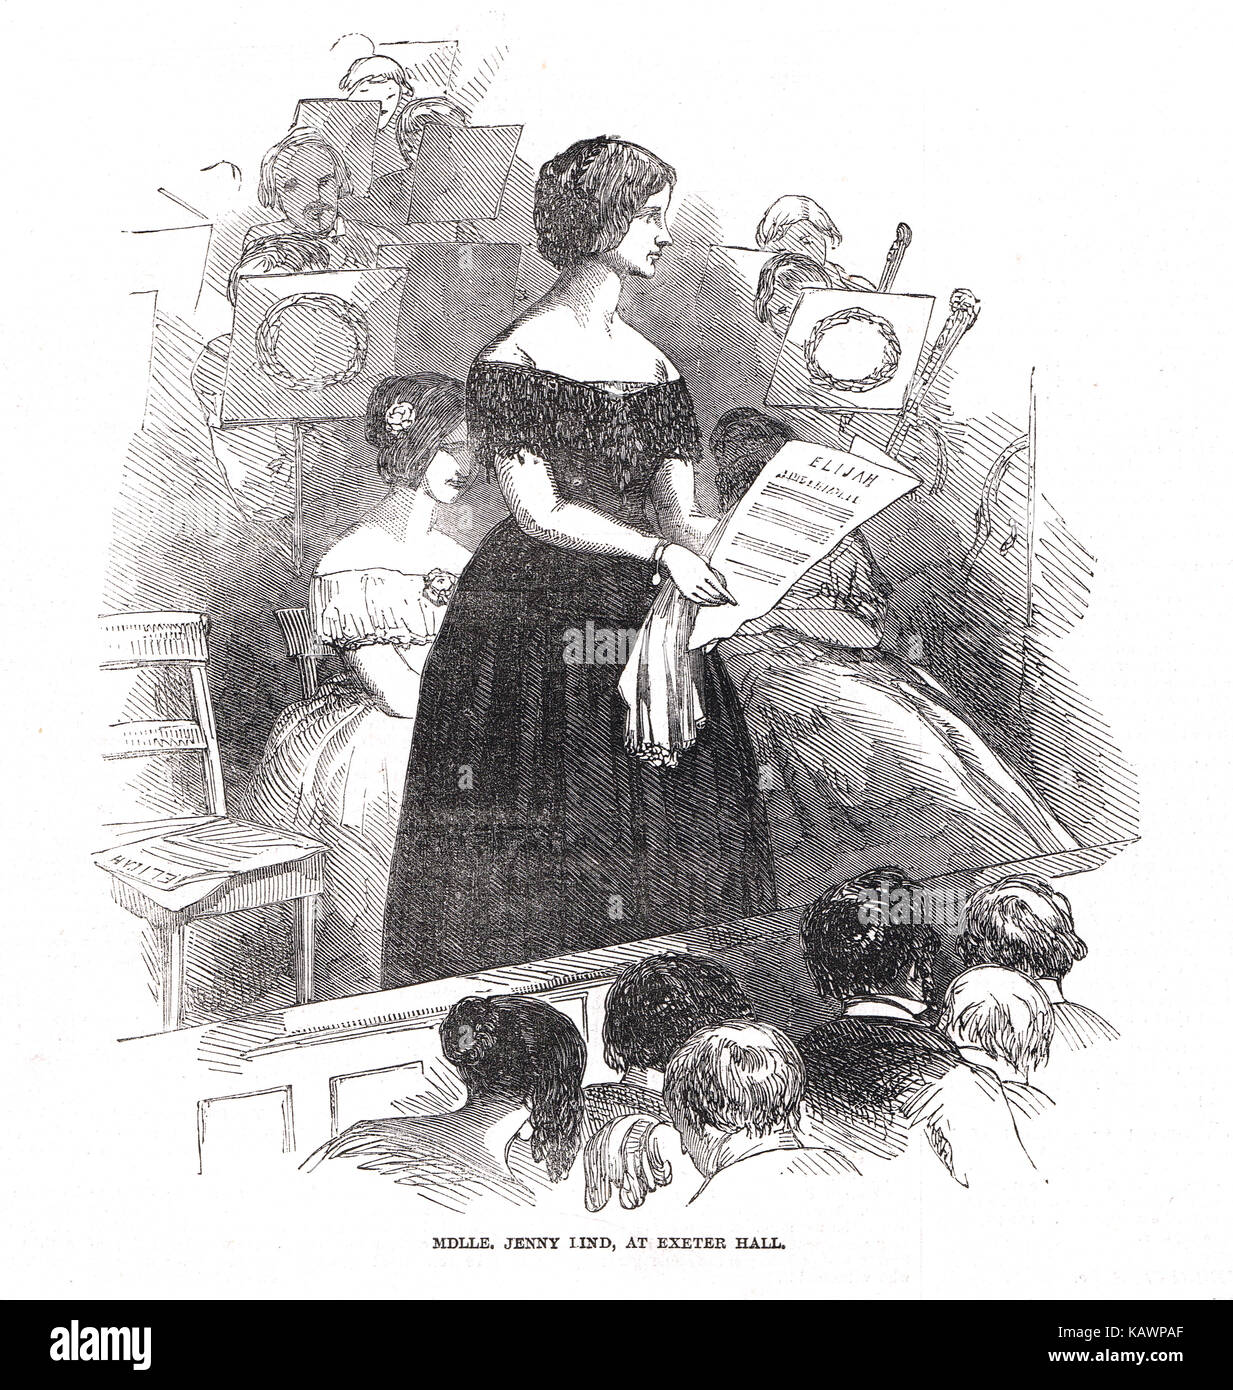 Jenny Lind, the Swedish Nightingale at Exeter Hall, 1848 - Stock Image